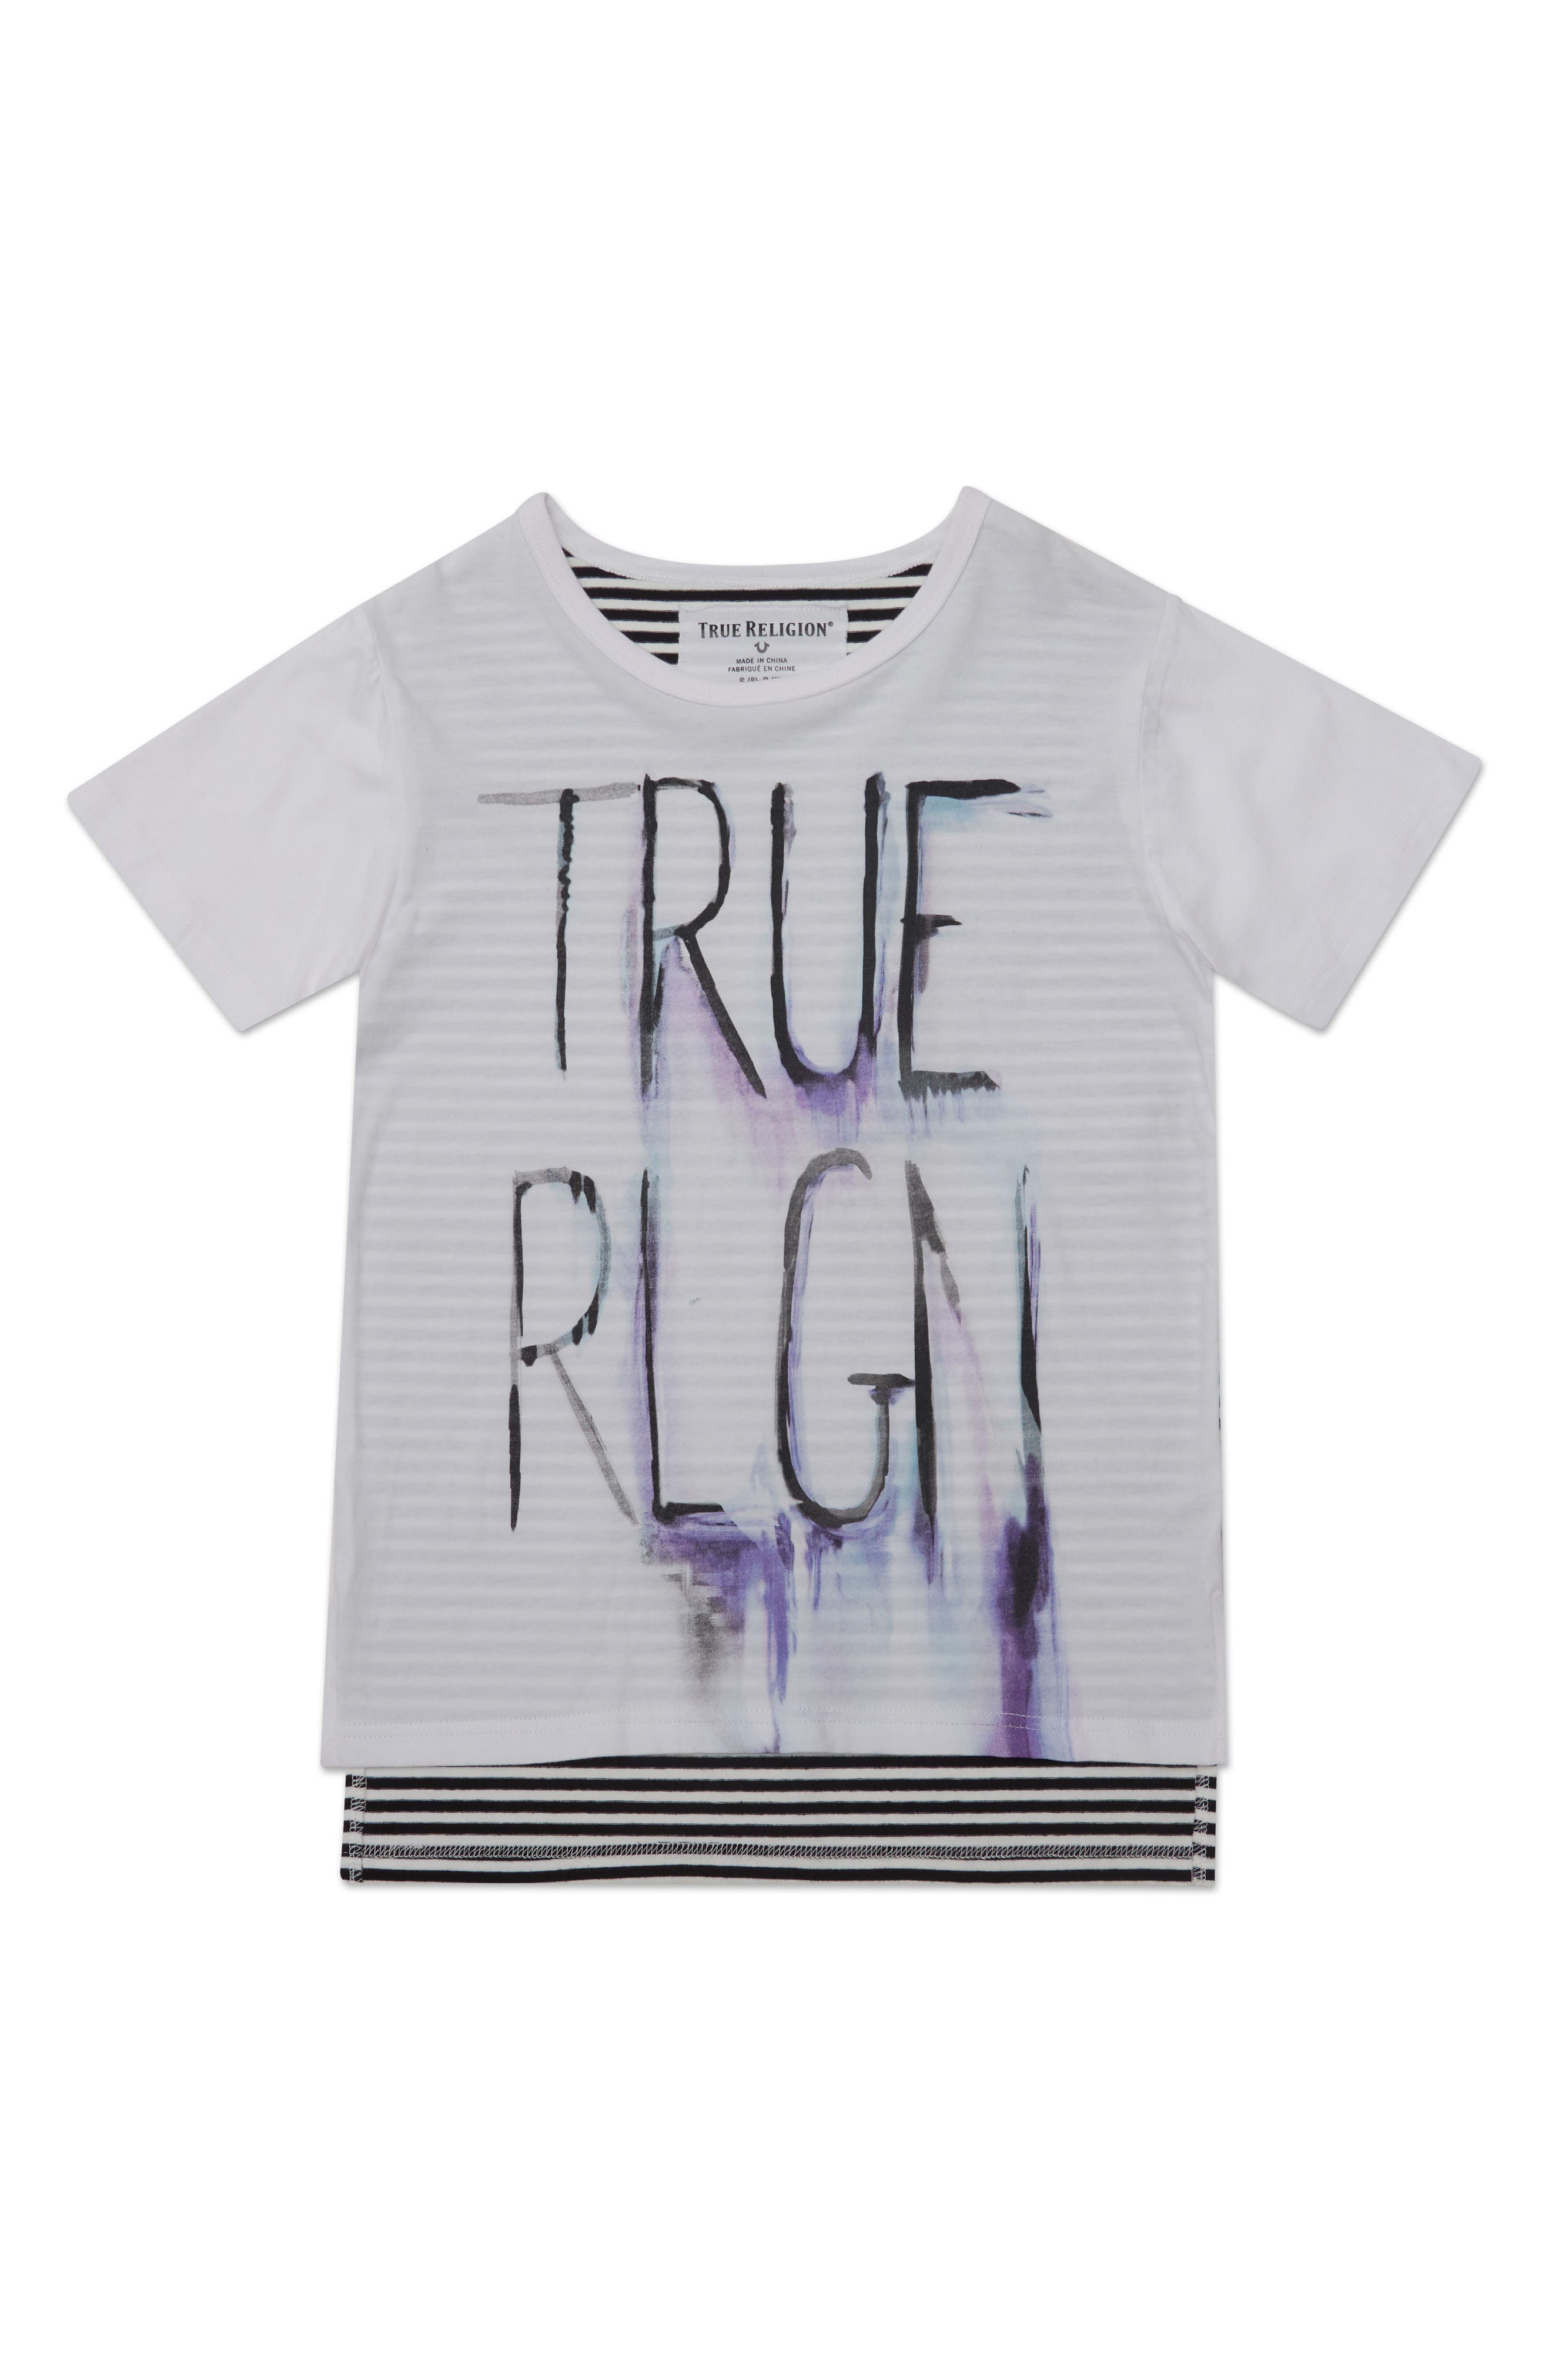 Main Image - True Religion Brand Jeans Sketch Graphic T-Shirt (Toddler Boys & Little Boys)